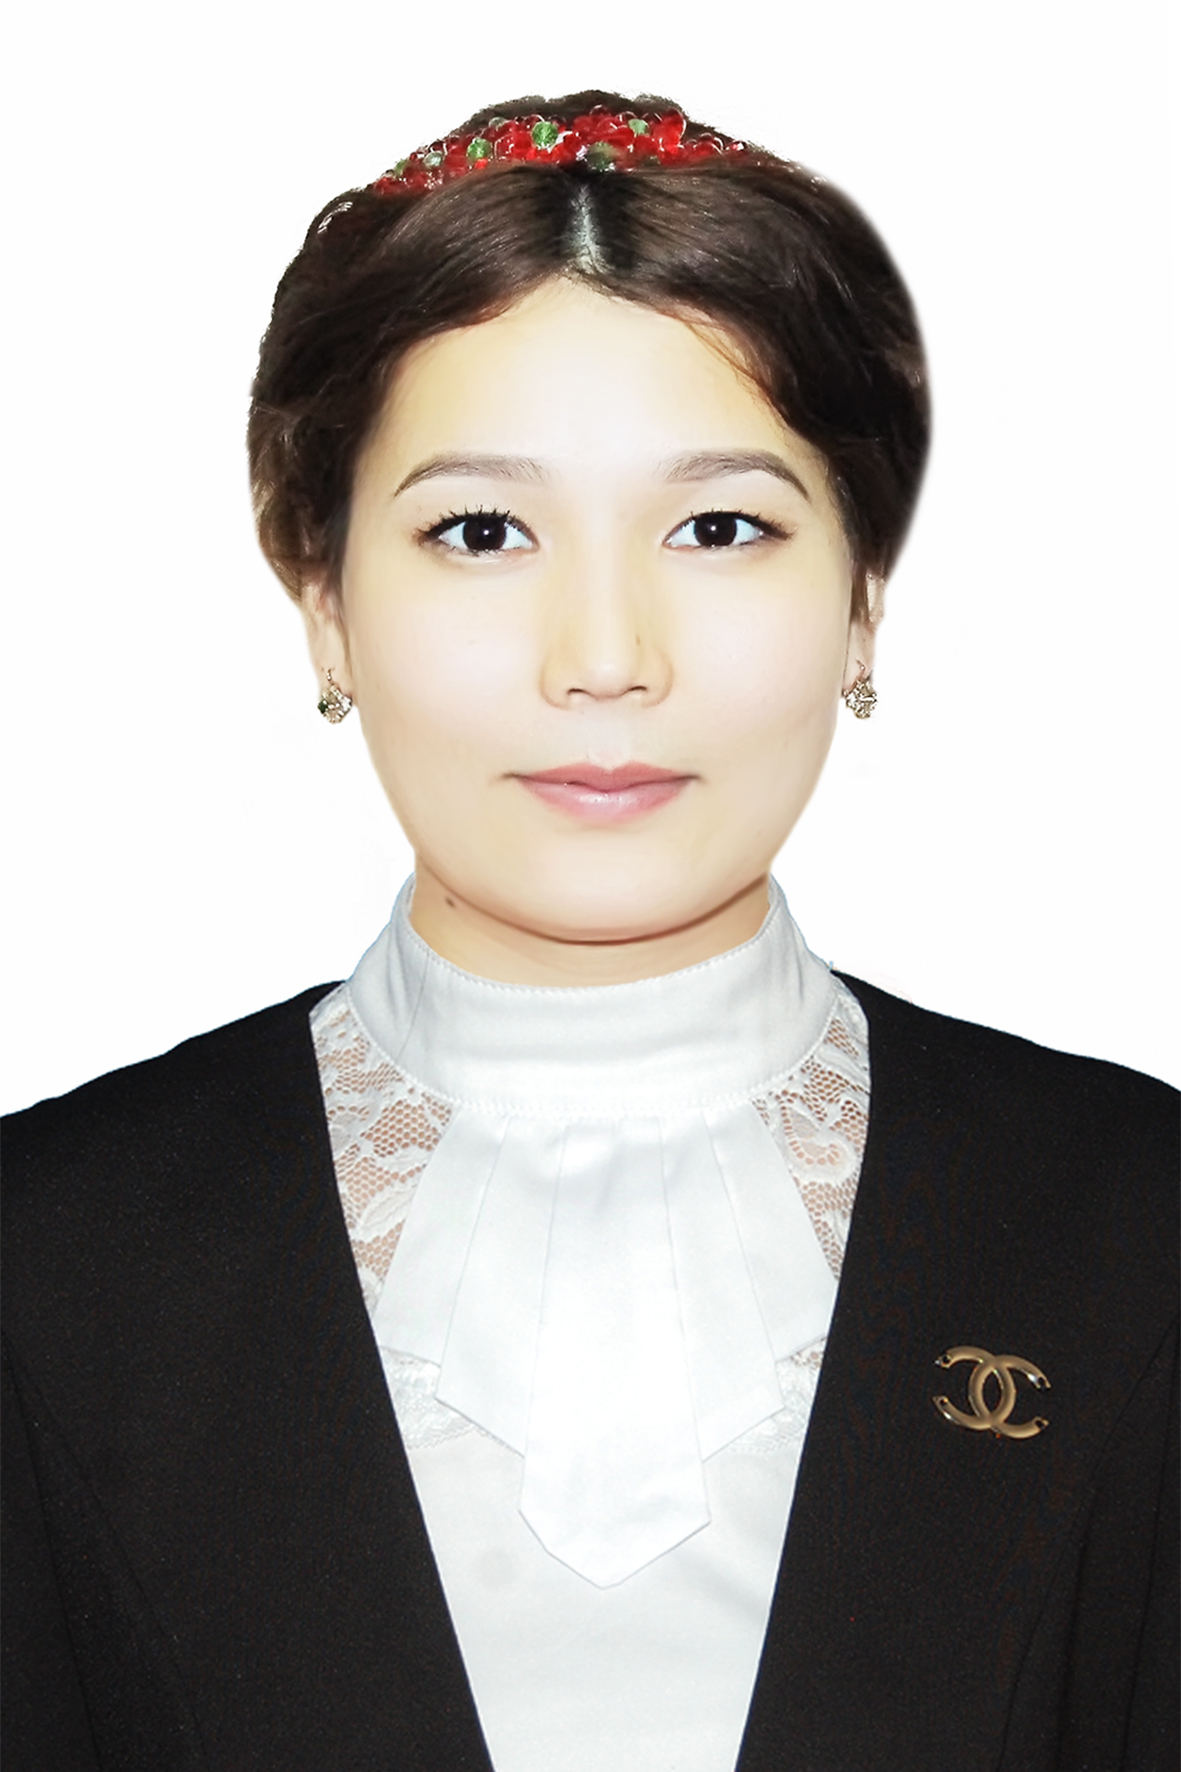 Almenova Gulbanu, Uzbekistan, Nukus State Pedagogical Institute named after Ajiniyaz